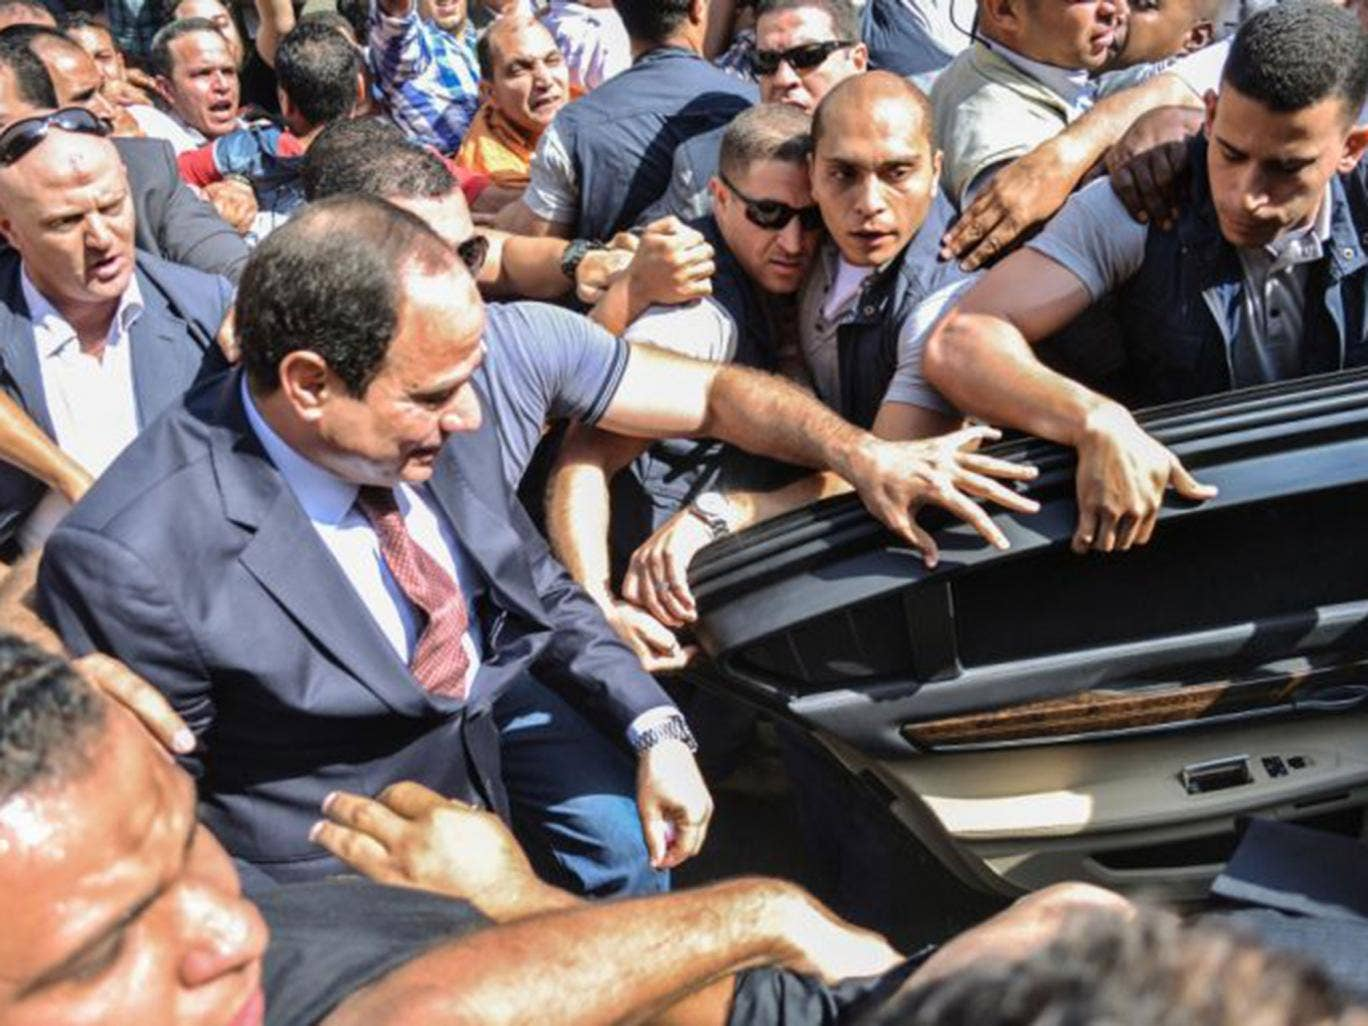 Sisi (centre) led the coup last year against Morsi